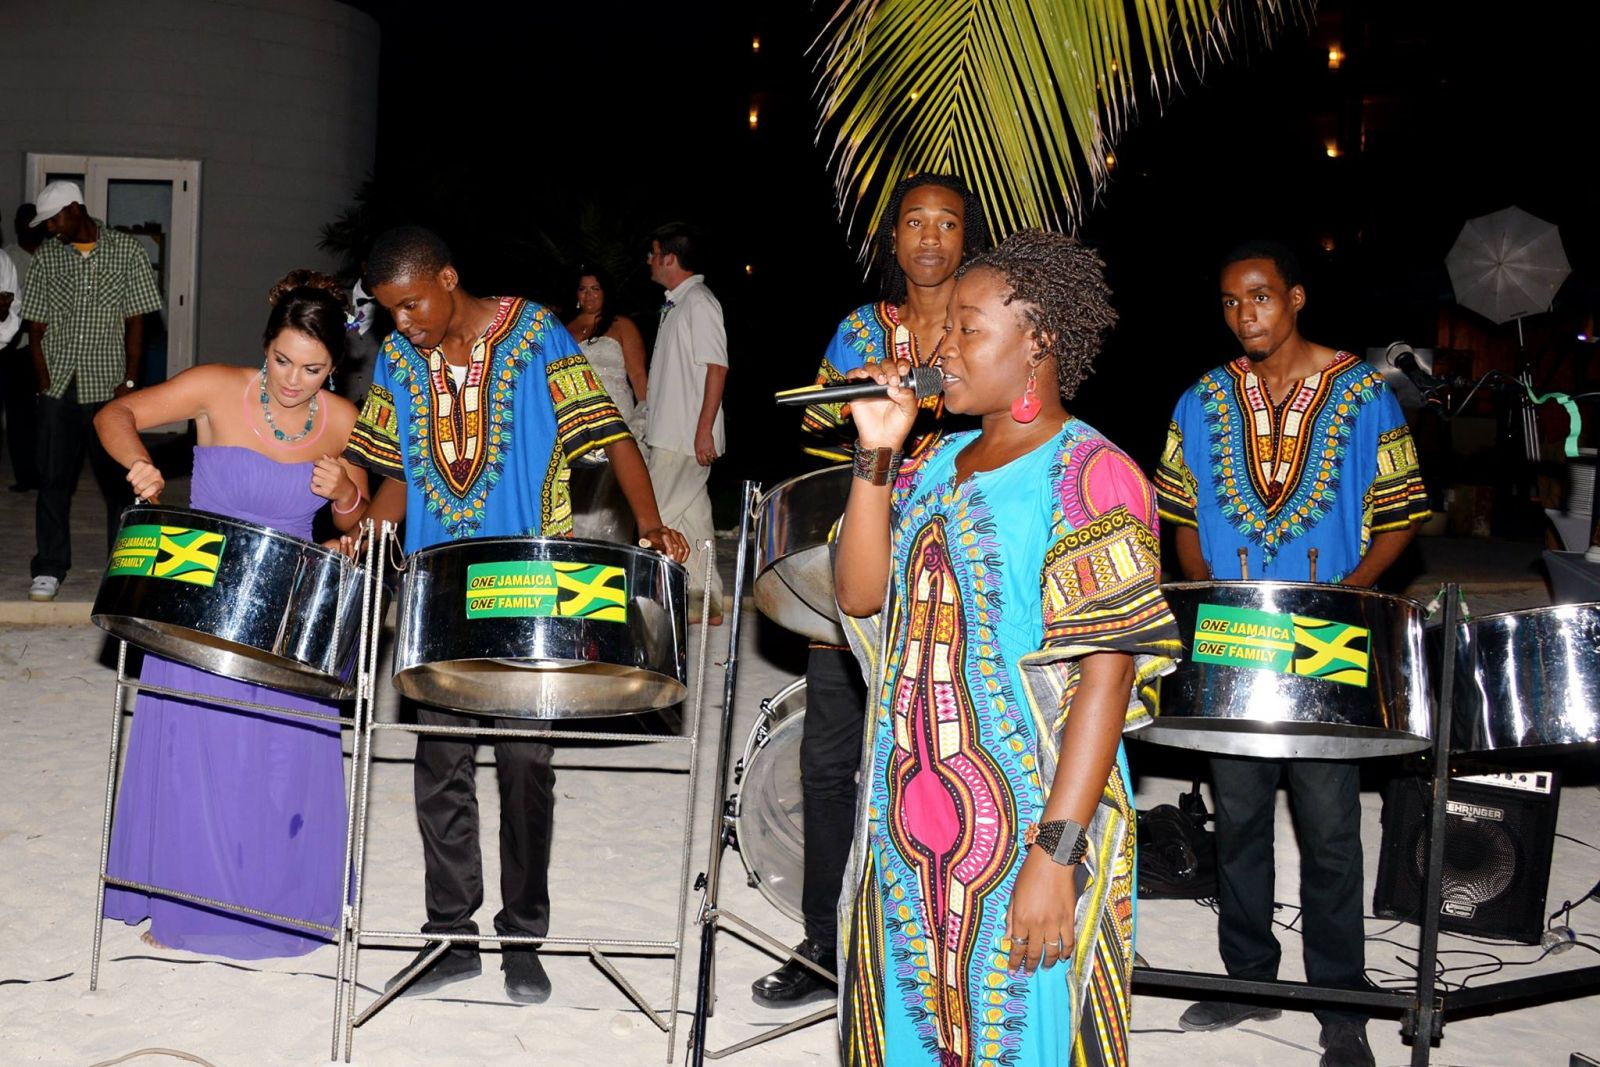 my sister playing with the steel drum band